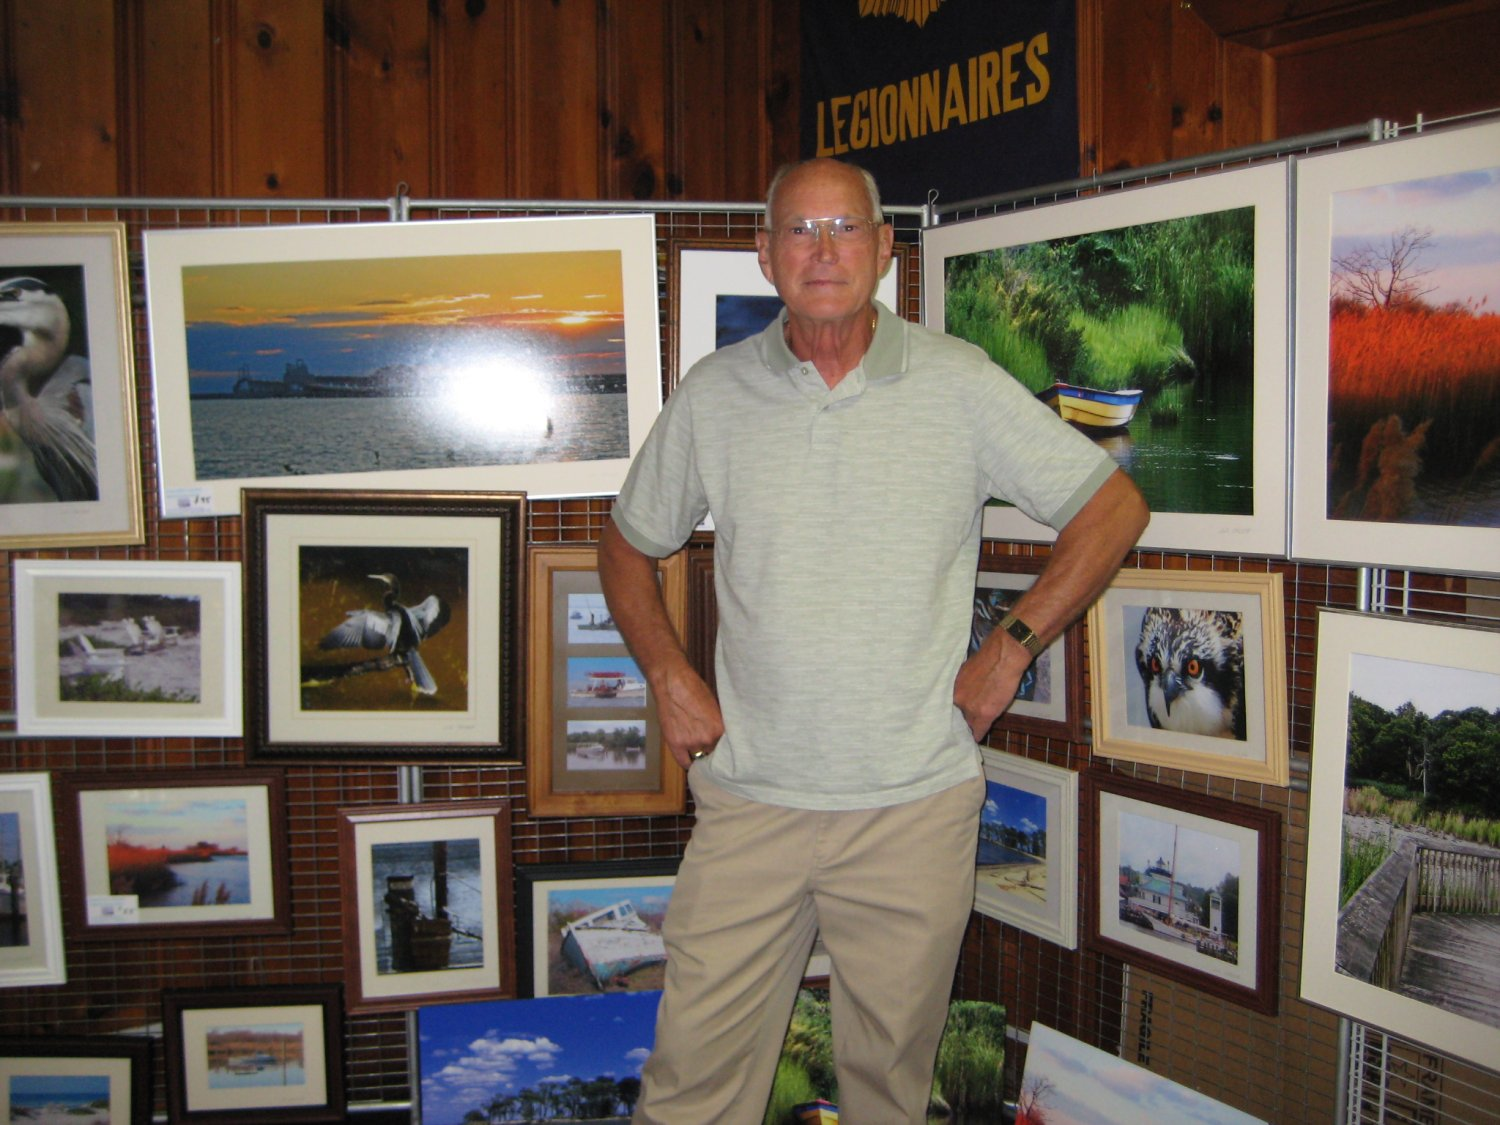 John Frichett and his stunning Eastern Shore Photography, Scenes, and Wildlife.